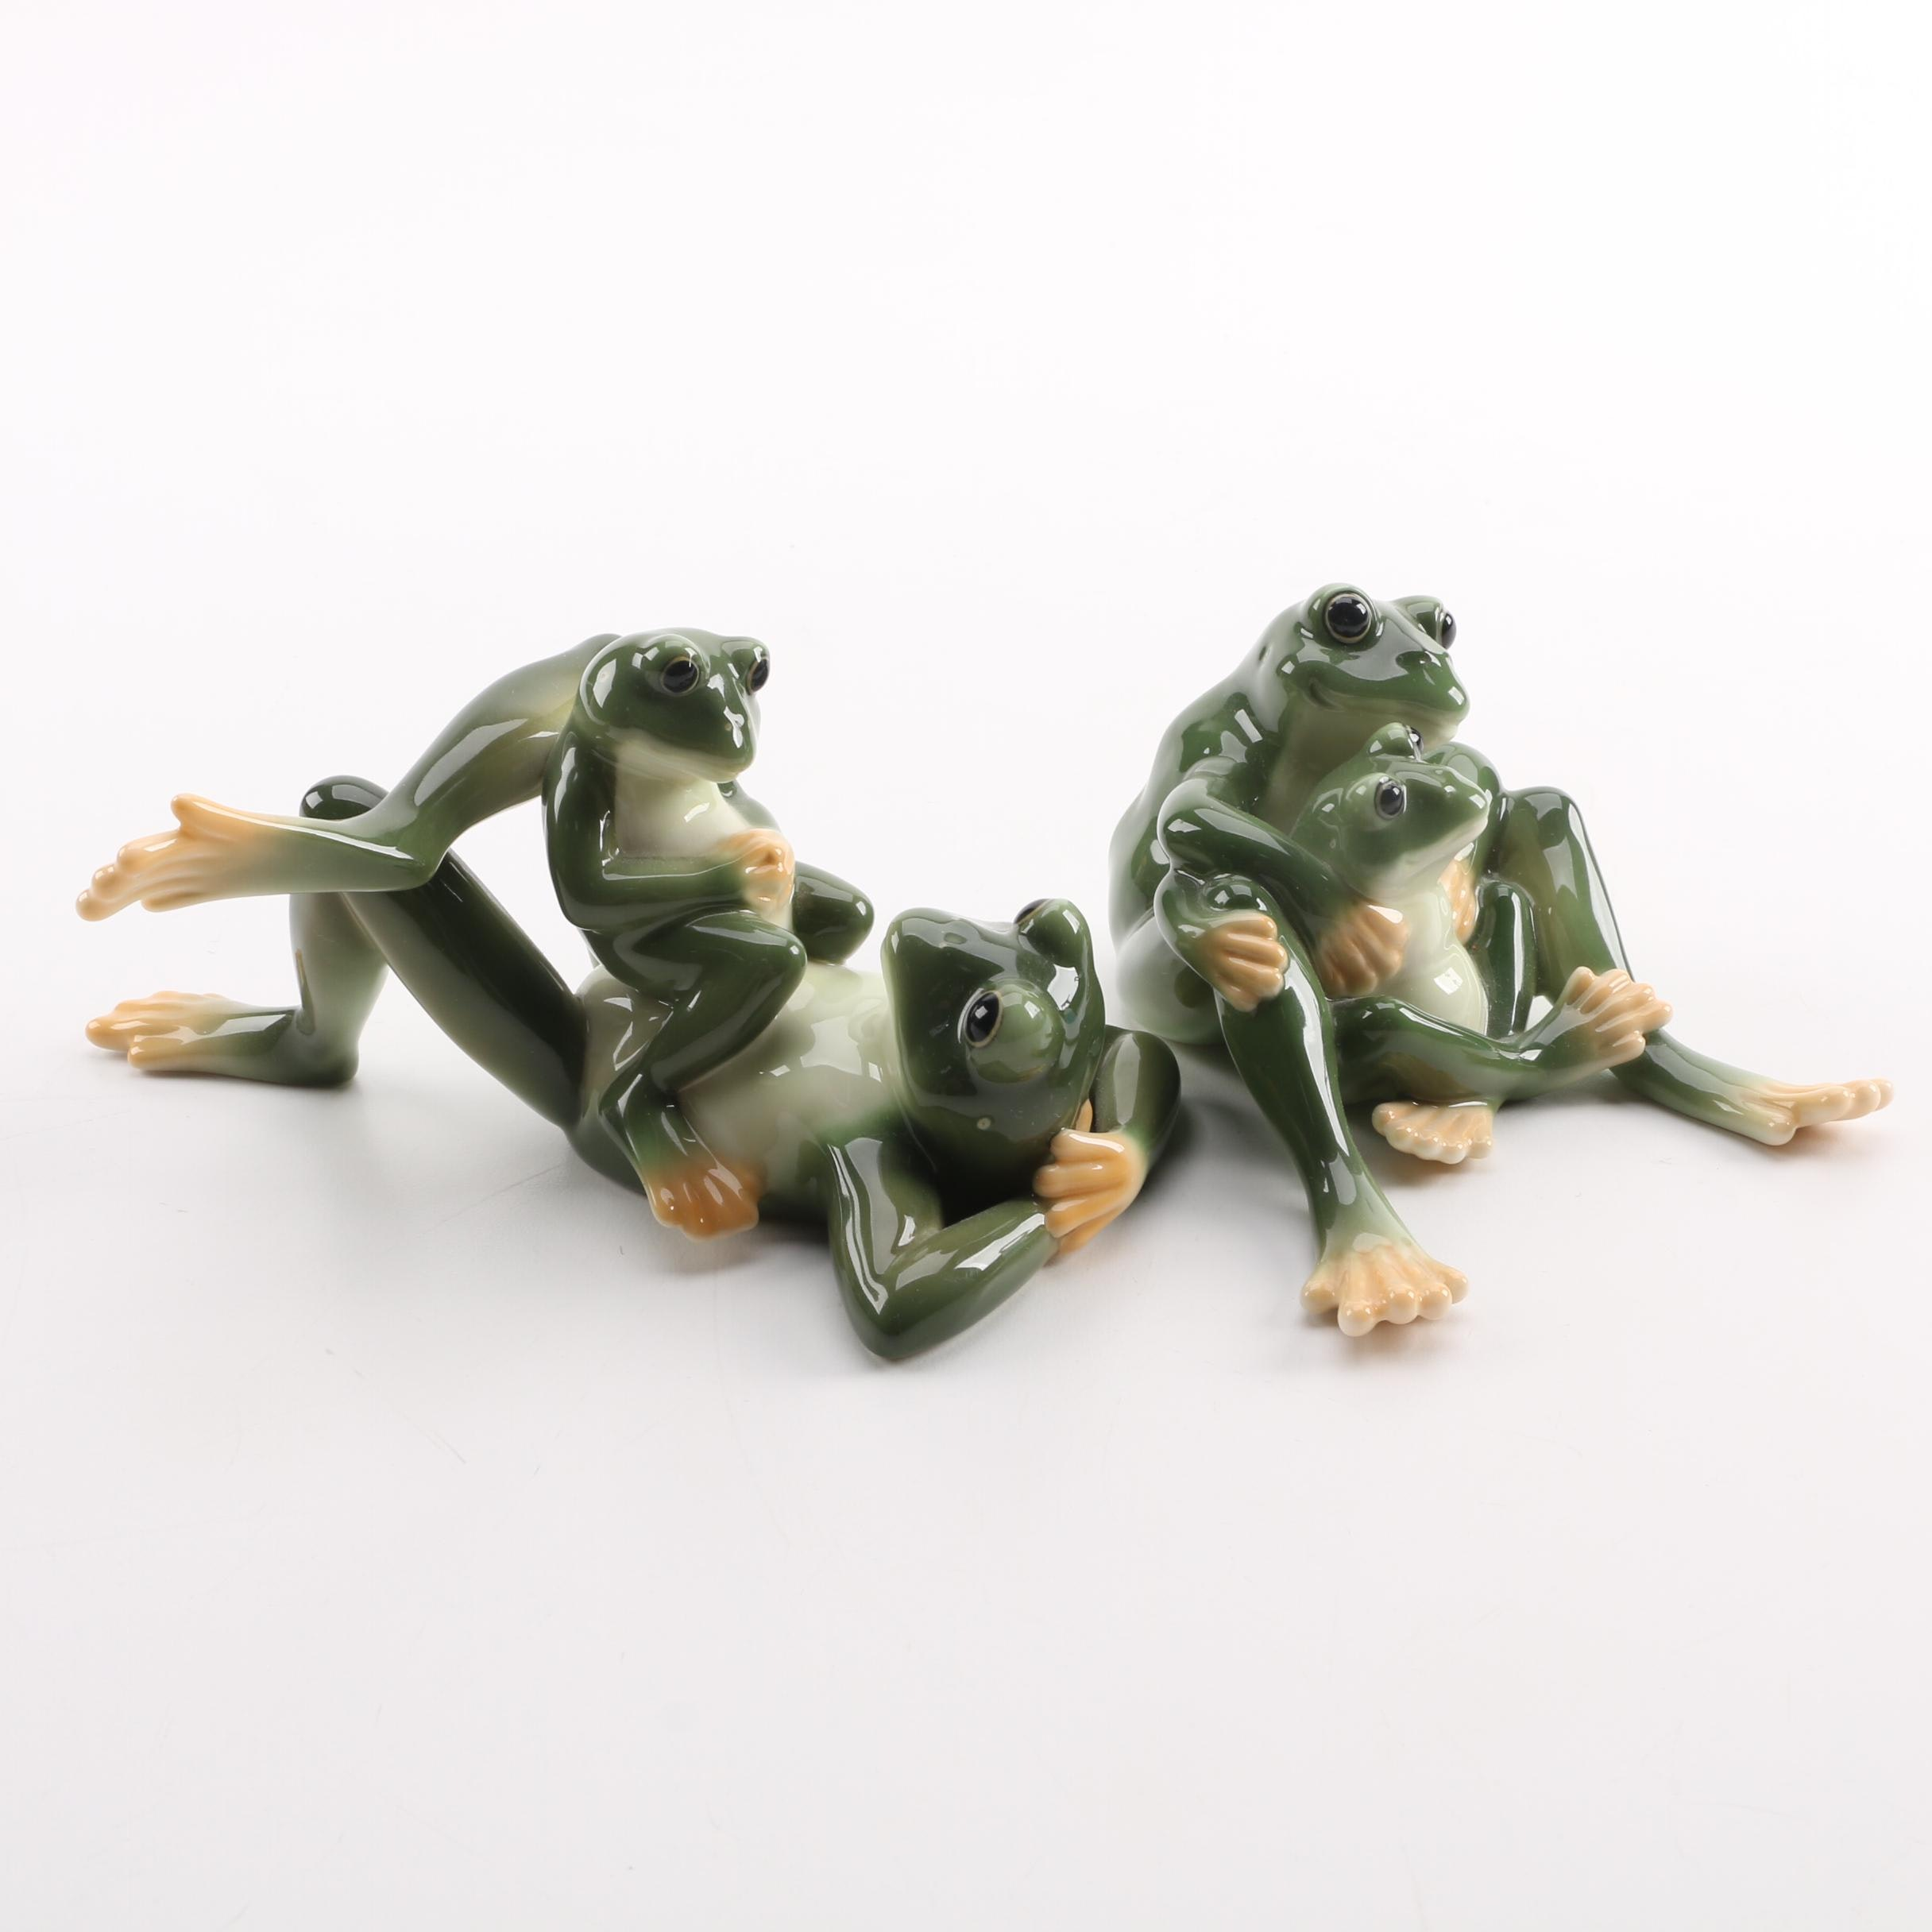 Franz Porcelain Frog Family Figurines